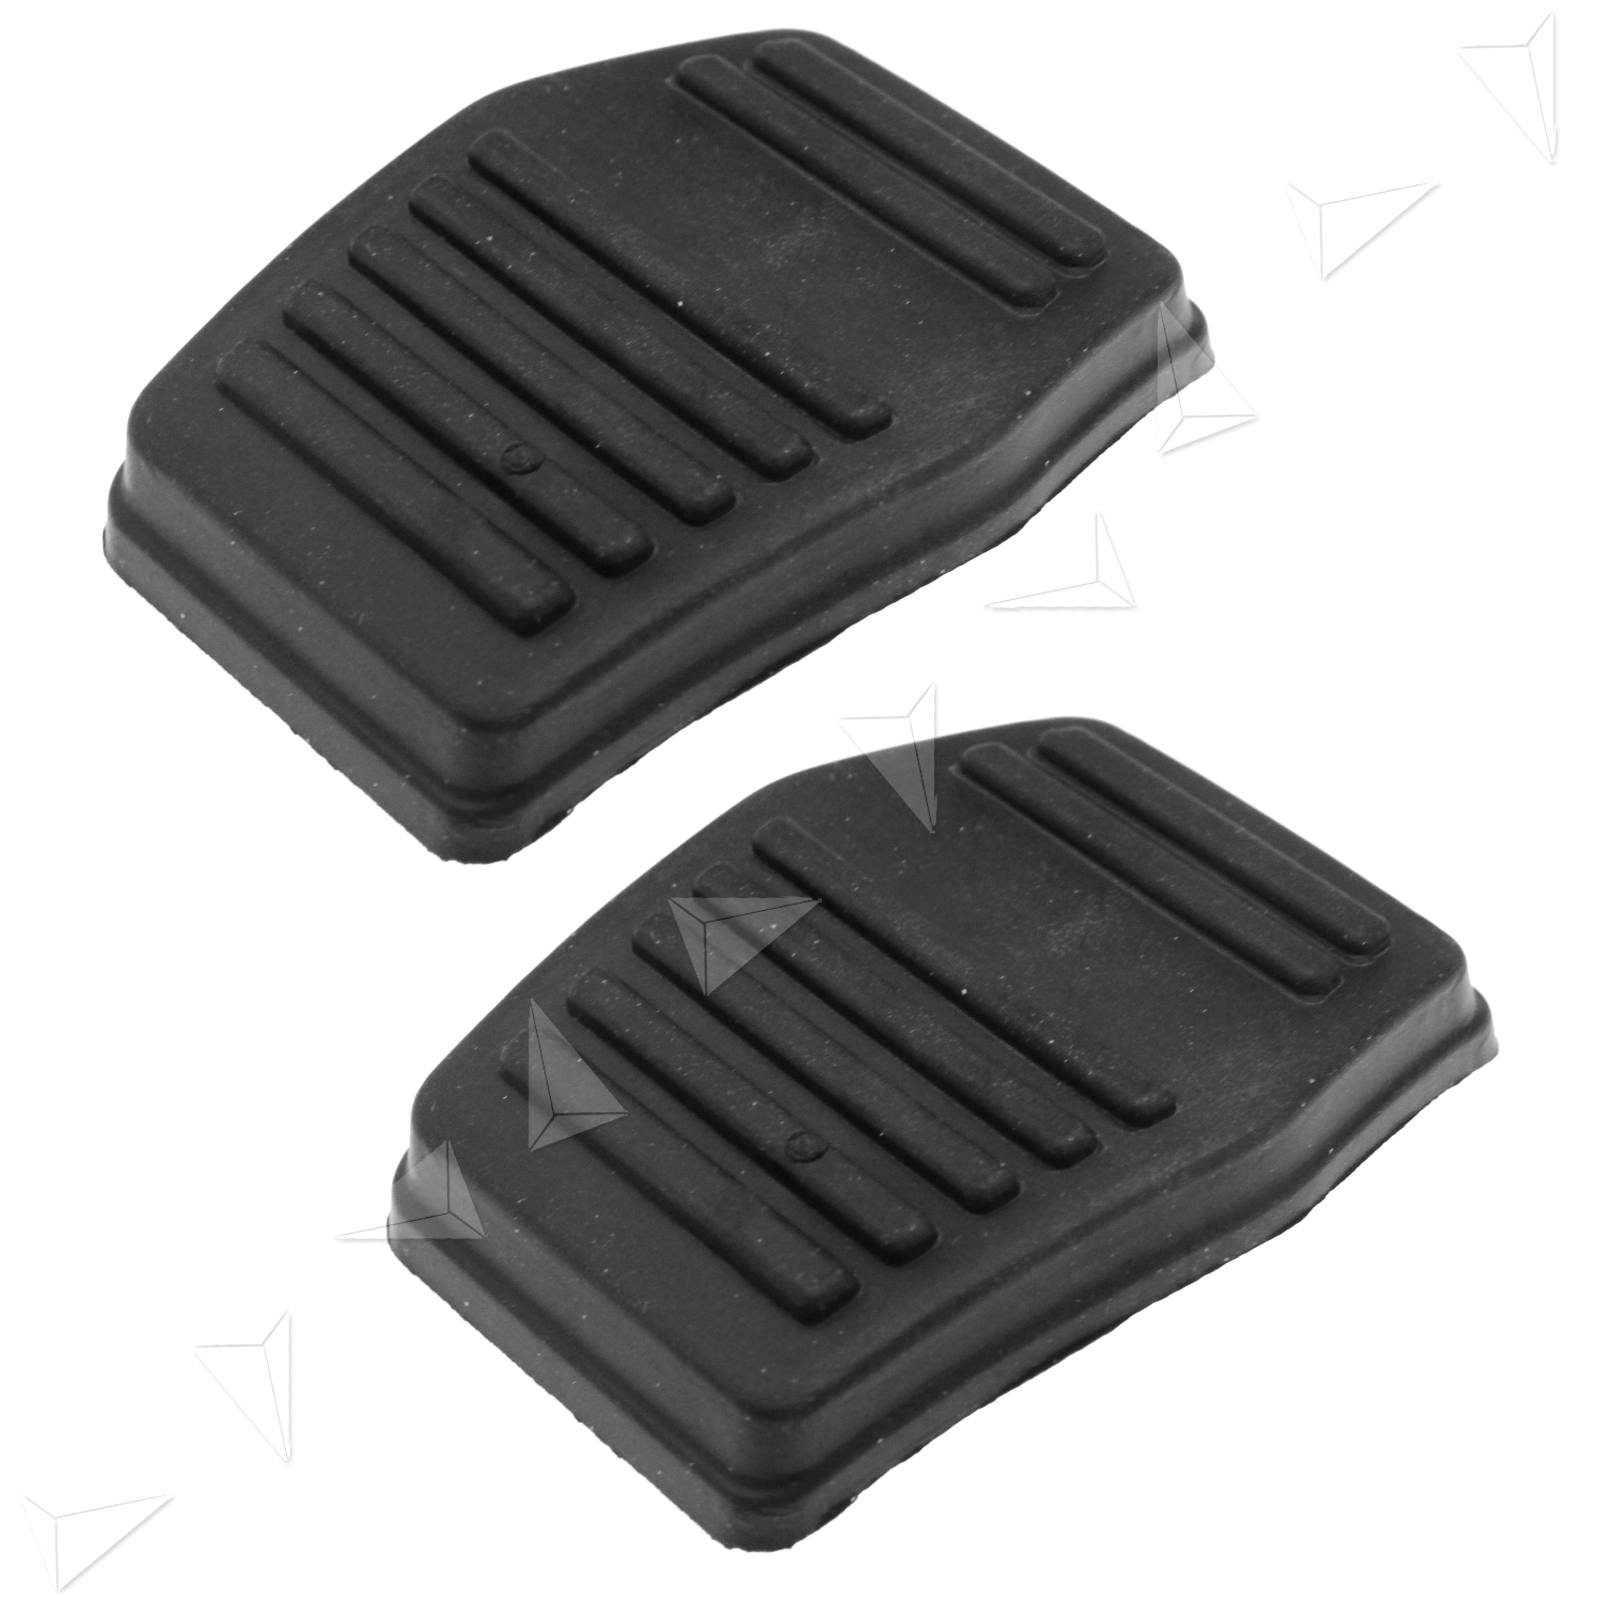 Clutch Pad Material : Black clutch or brake pedal pad rubber cover for ford